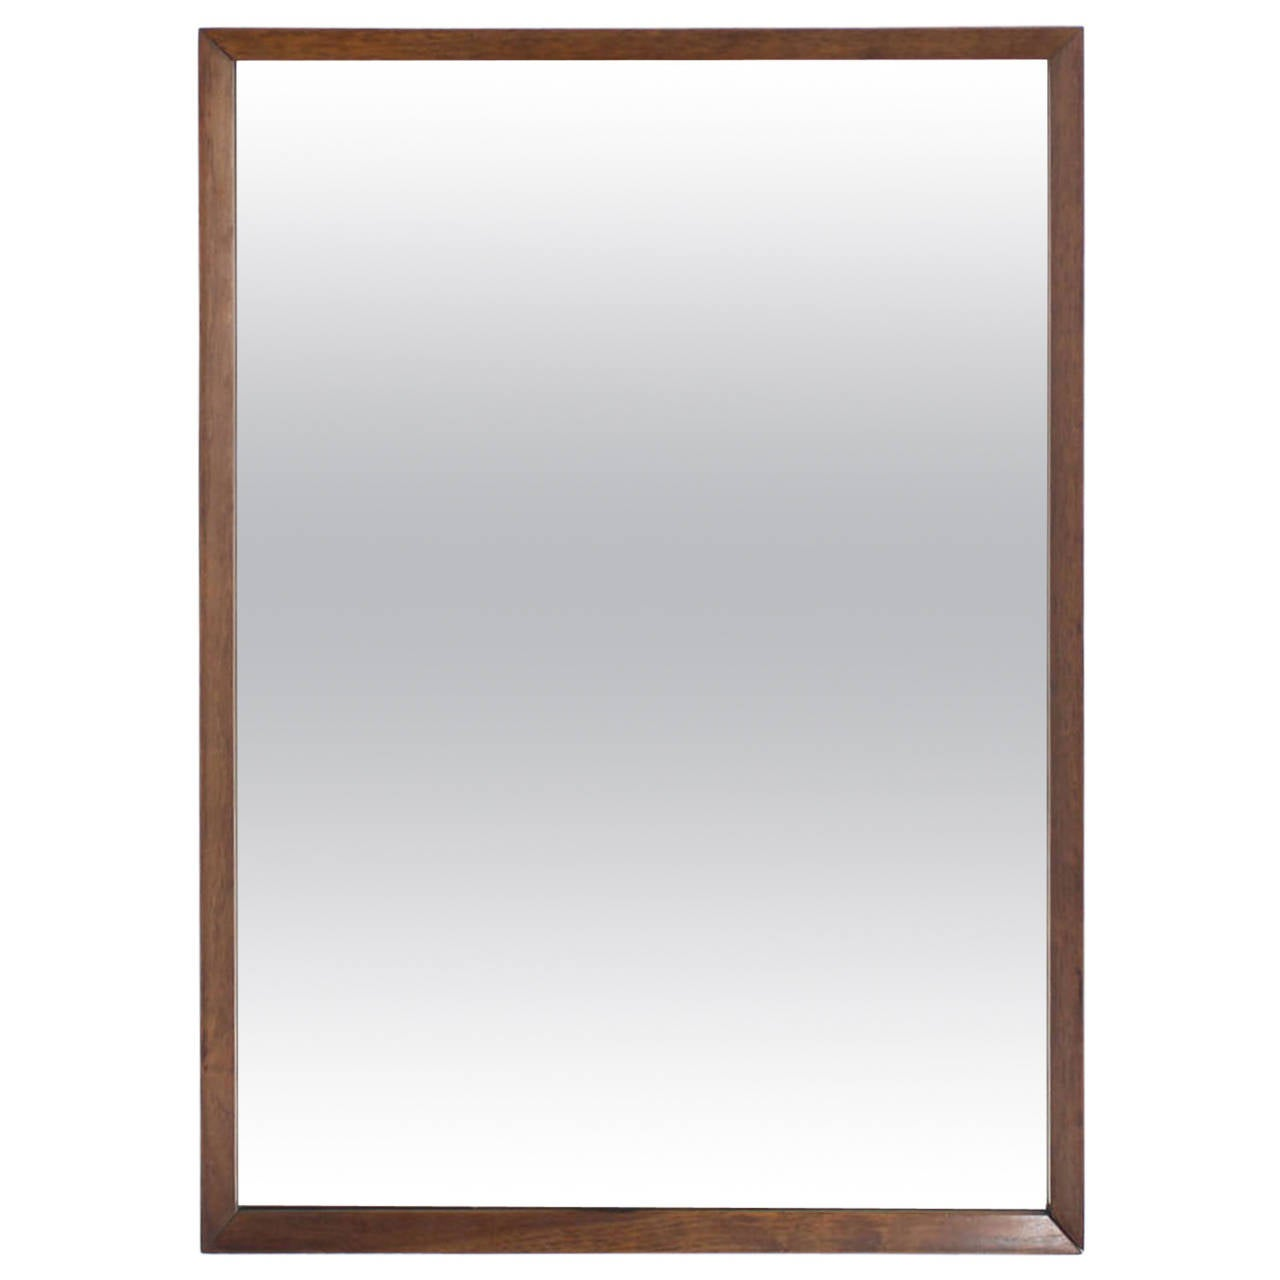 Large sleek rectangle walnut frame mirror at 1stdibs for Tall framed mirror